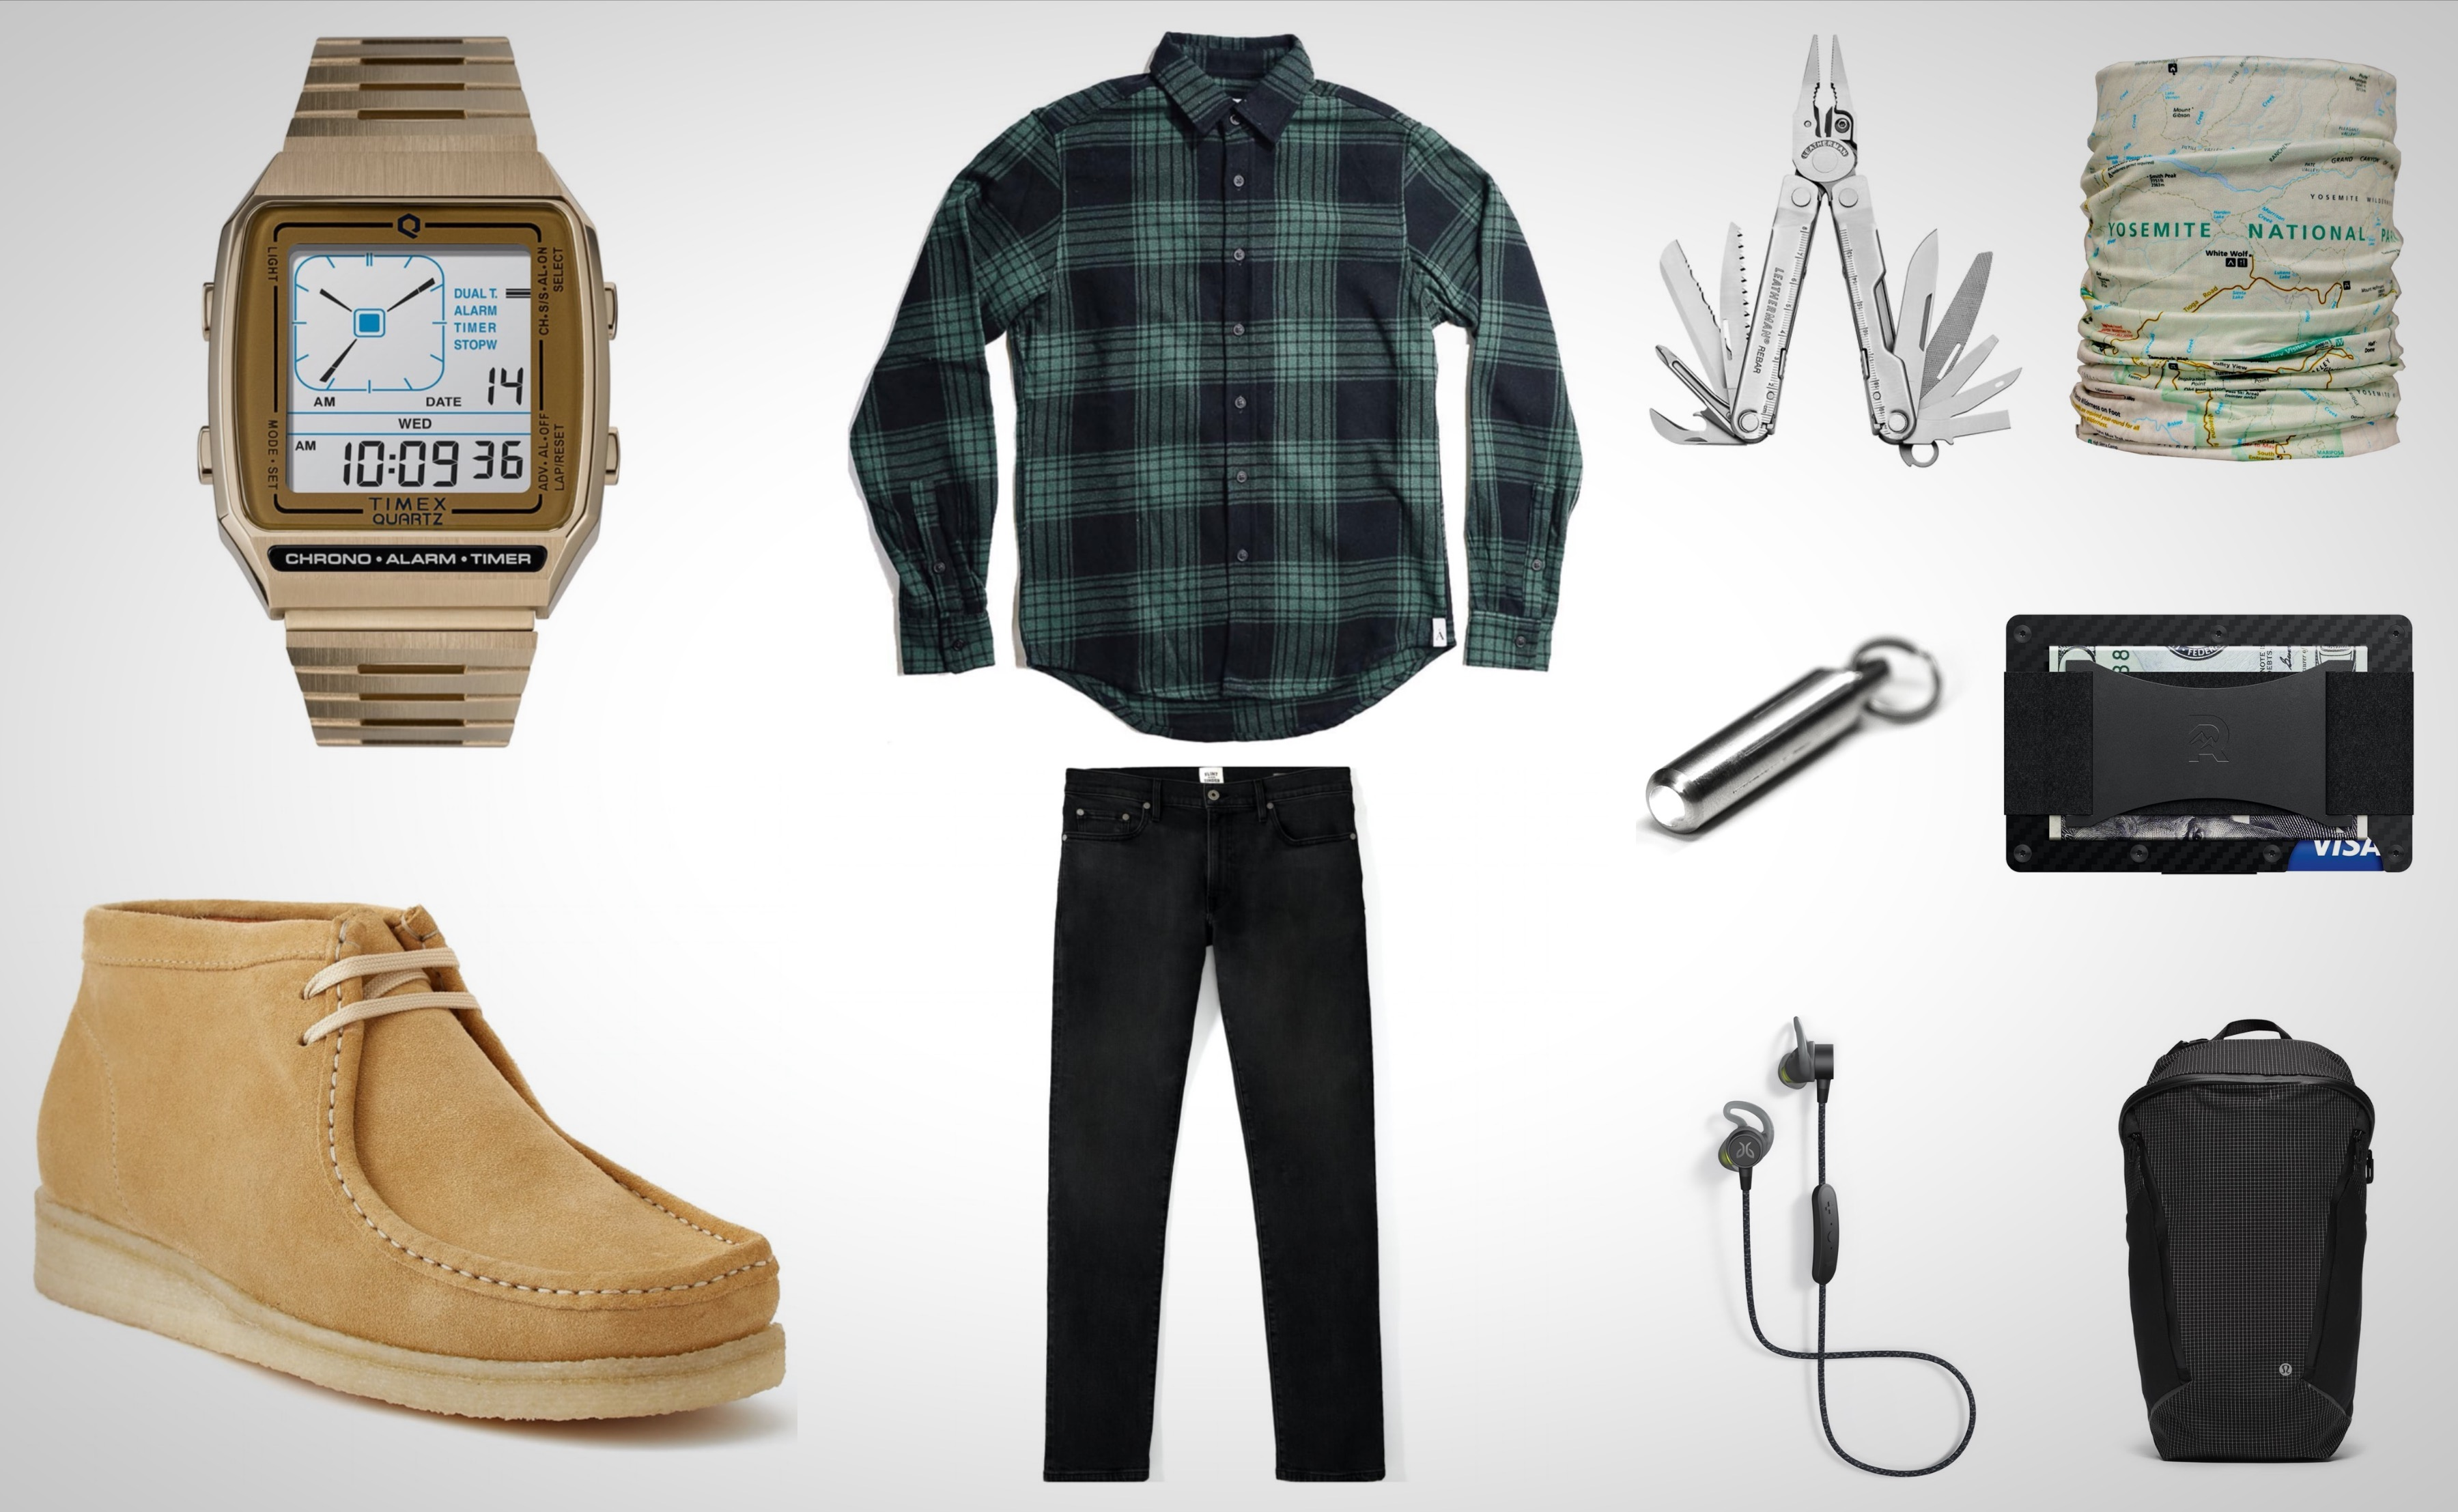 10 Of The Best Men's Everyday Carry Items Of The Year (So Far)